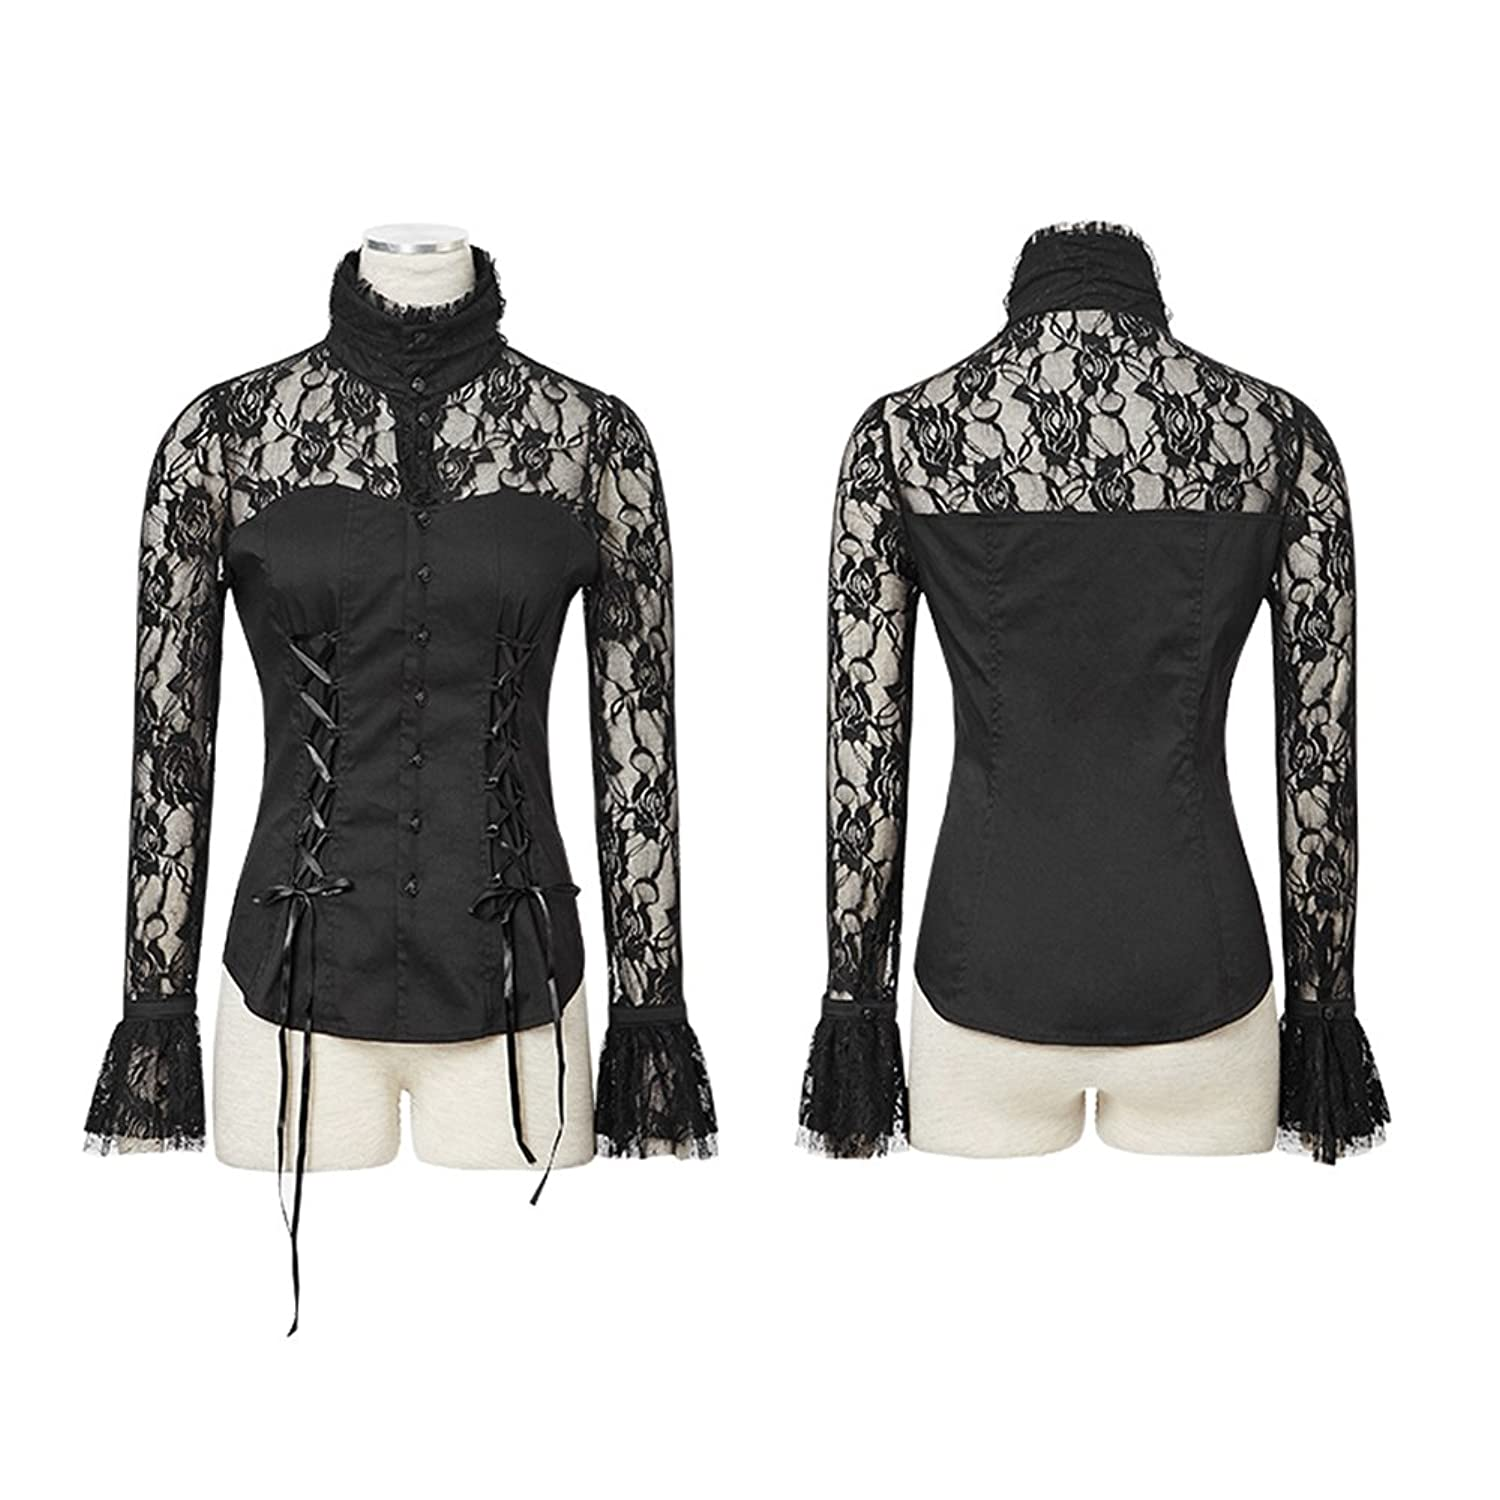 2016 New Punk Gothic Girl Lace Vintage Victorian Black Long sleeve Shirt Top